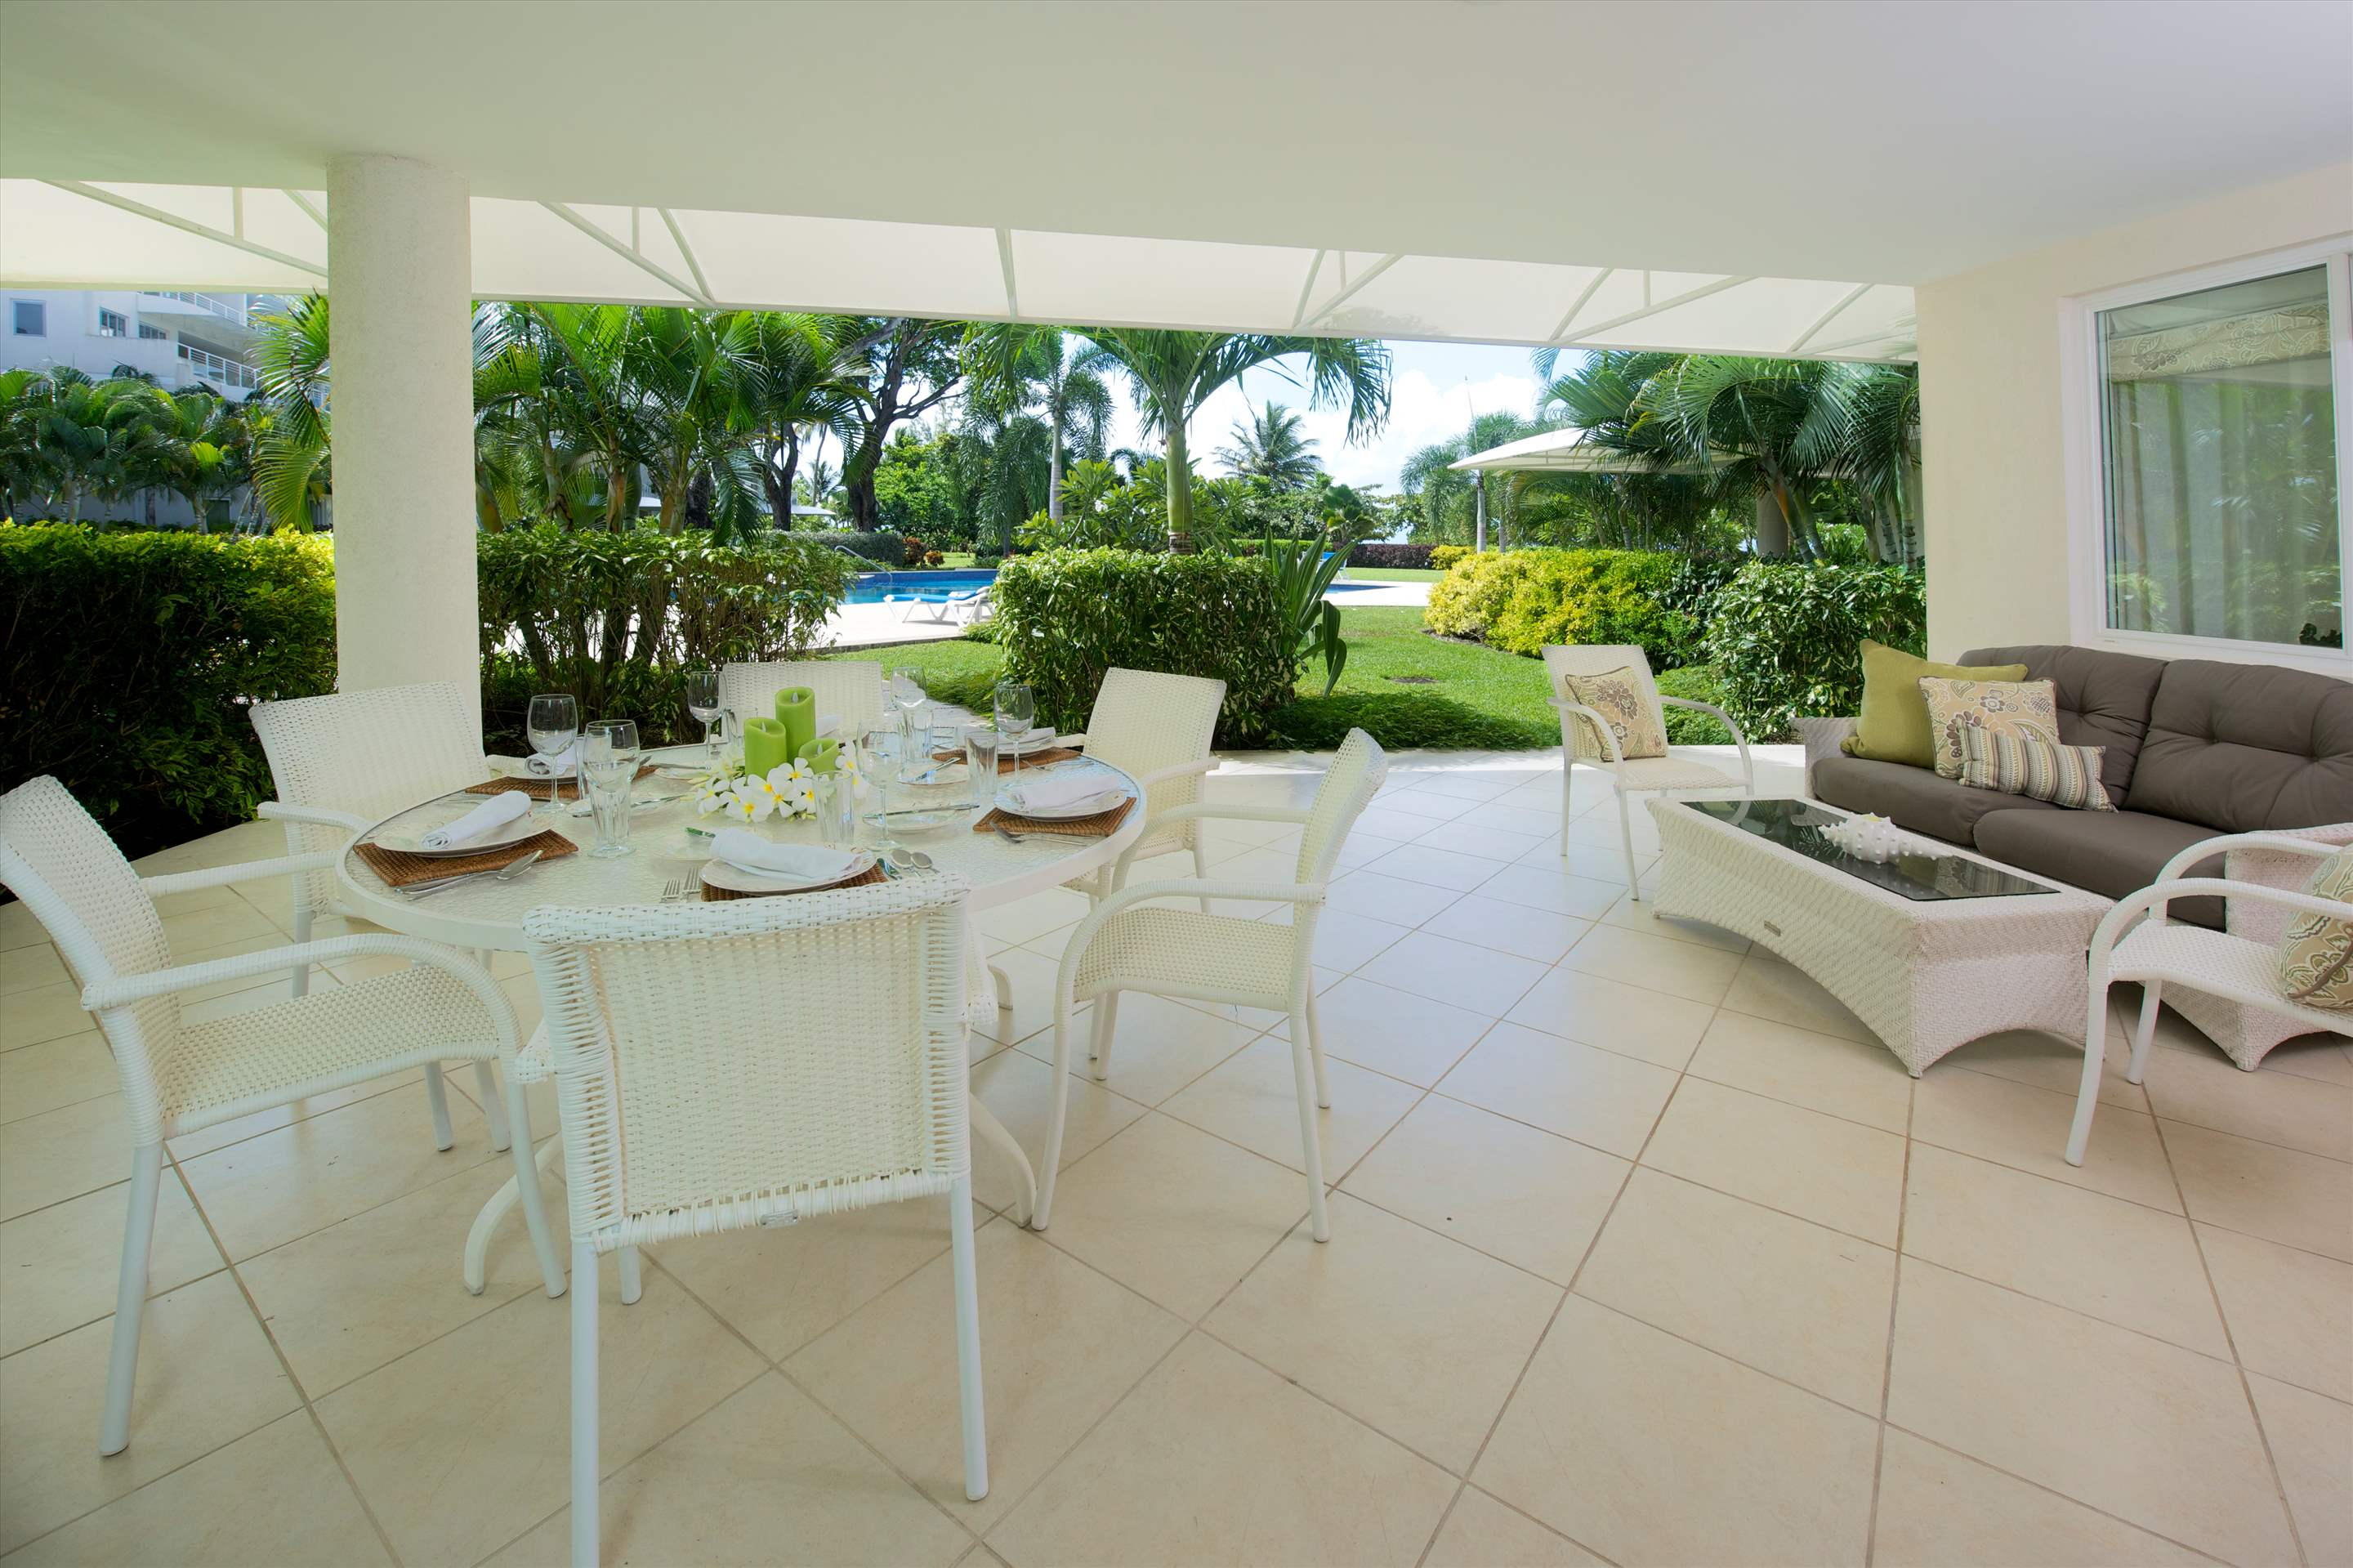 Palm Beach 110, 3 bedroom apartment in St. Lawrence Gap & South Coast, Barbados